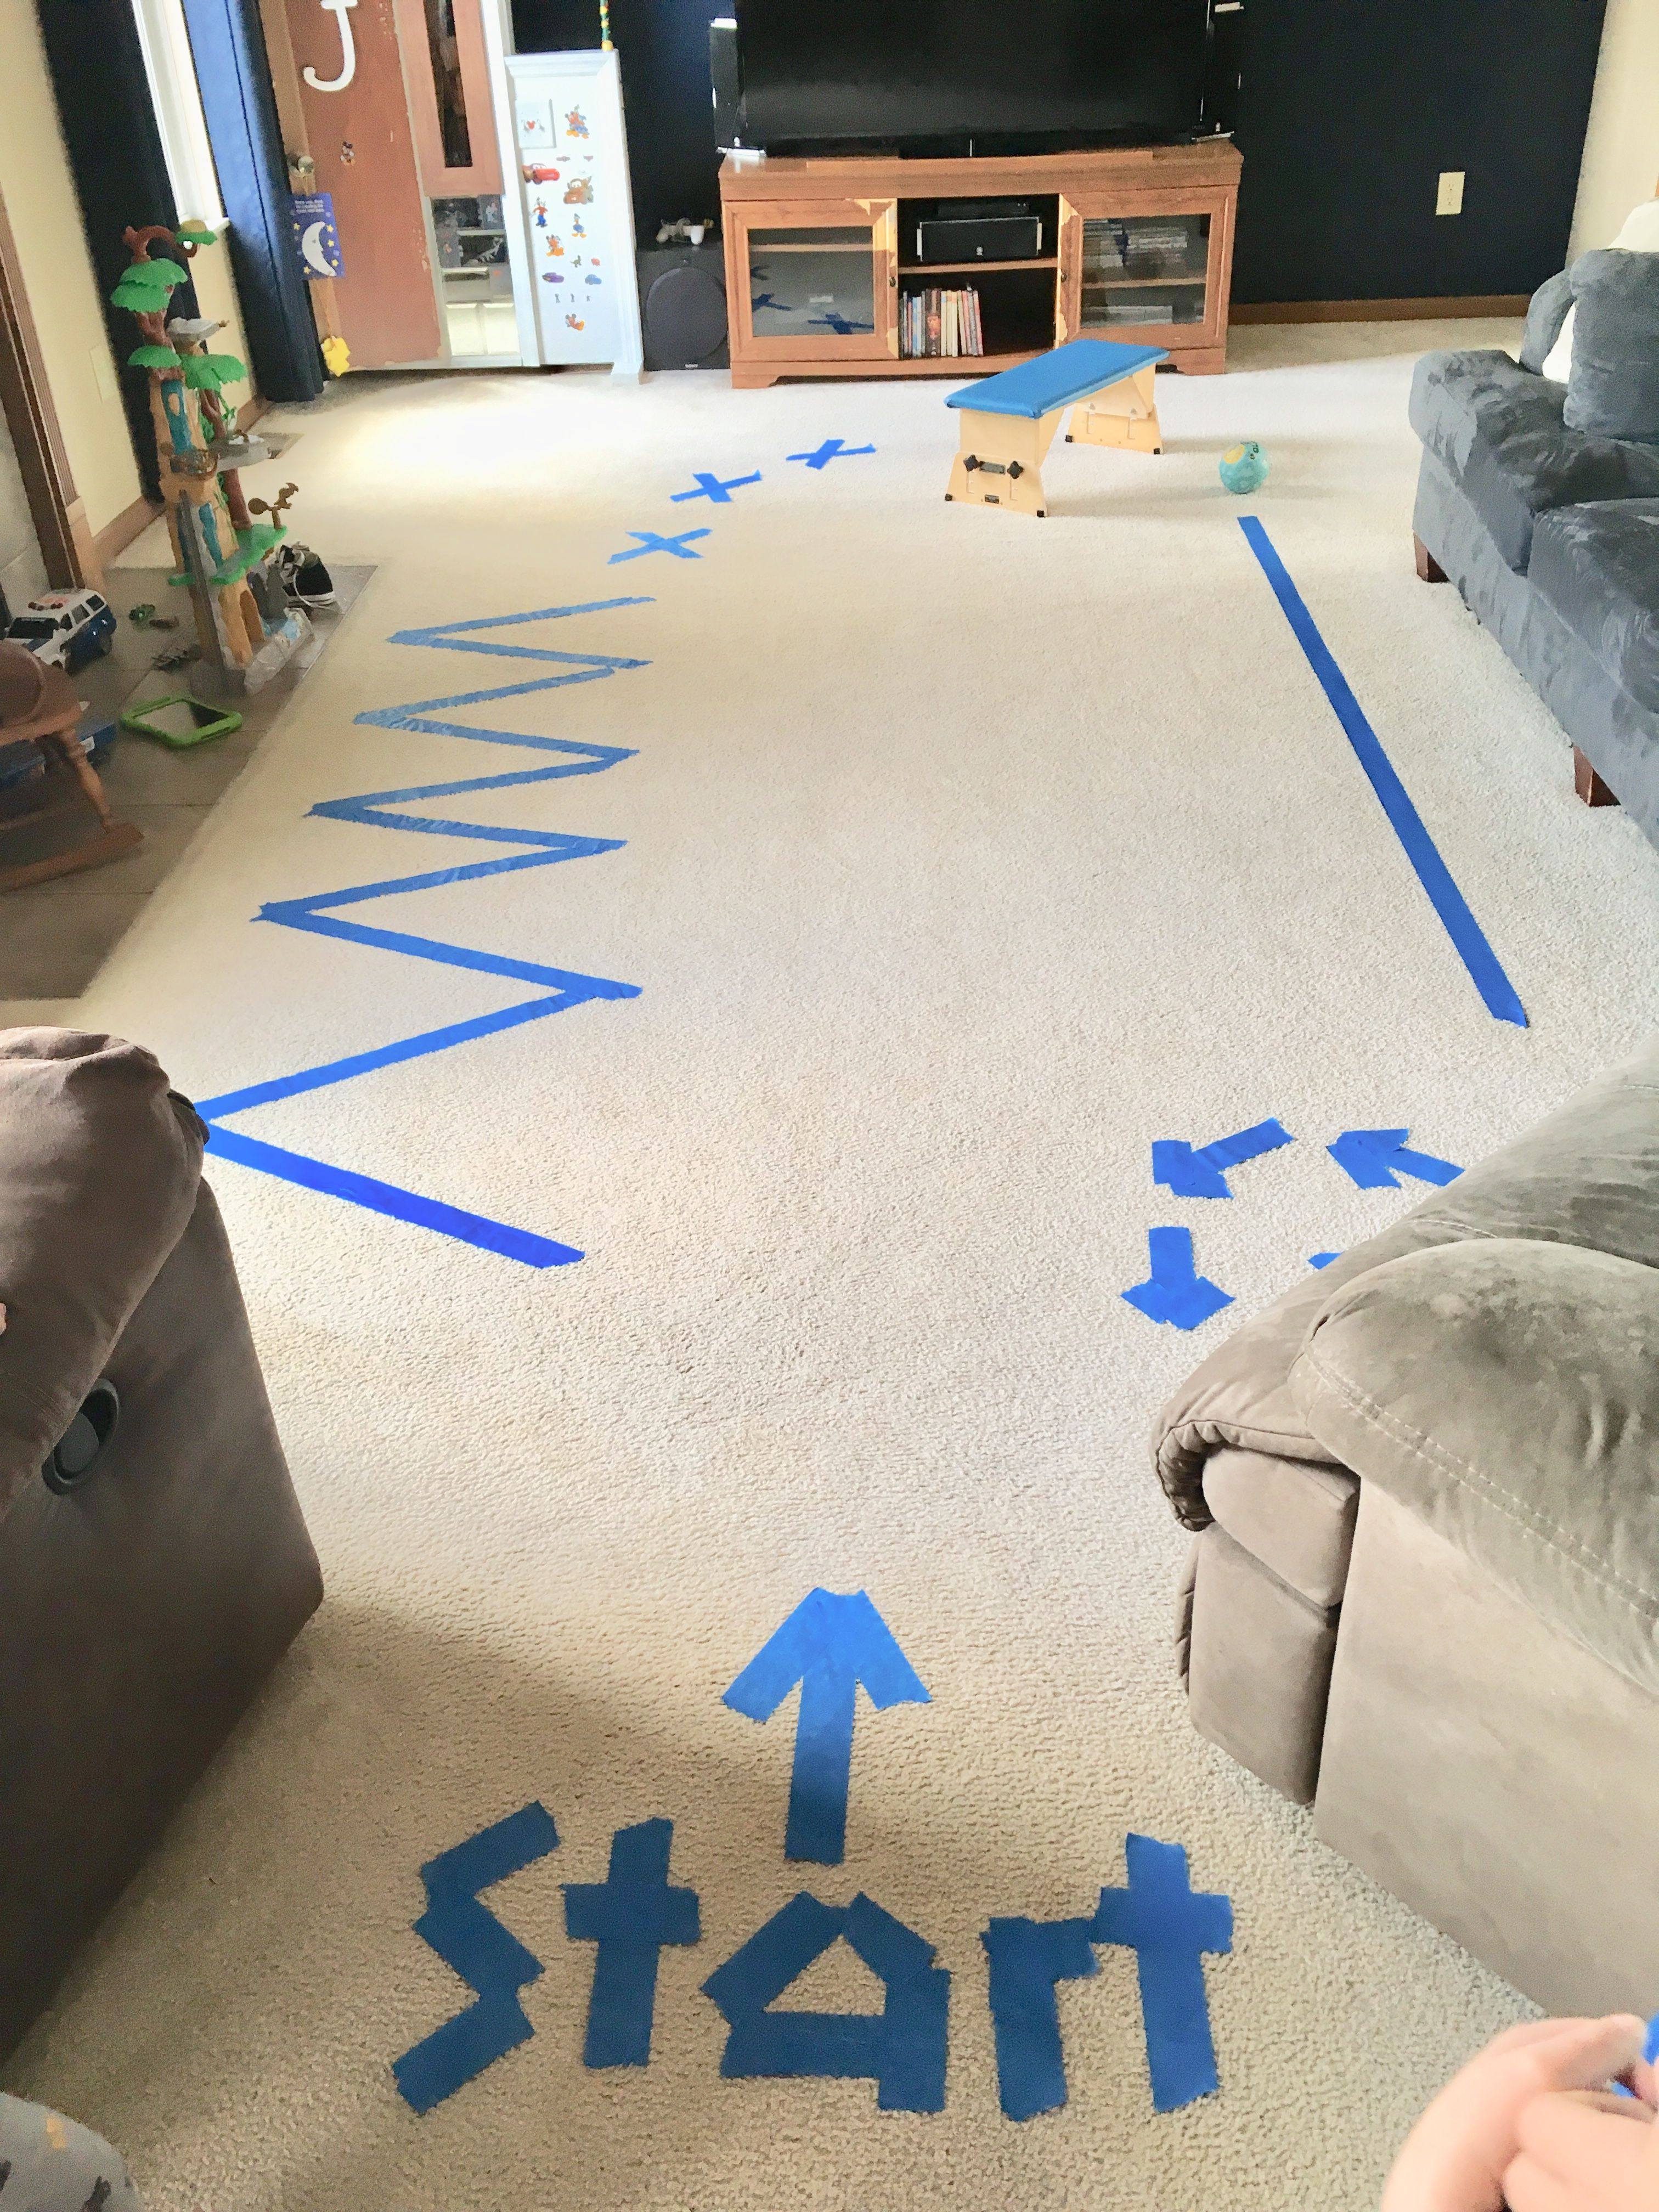 Indoor Painters Tape Obstacle Course The Little Kids Love